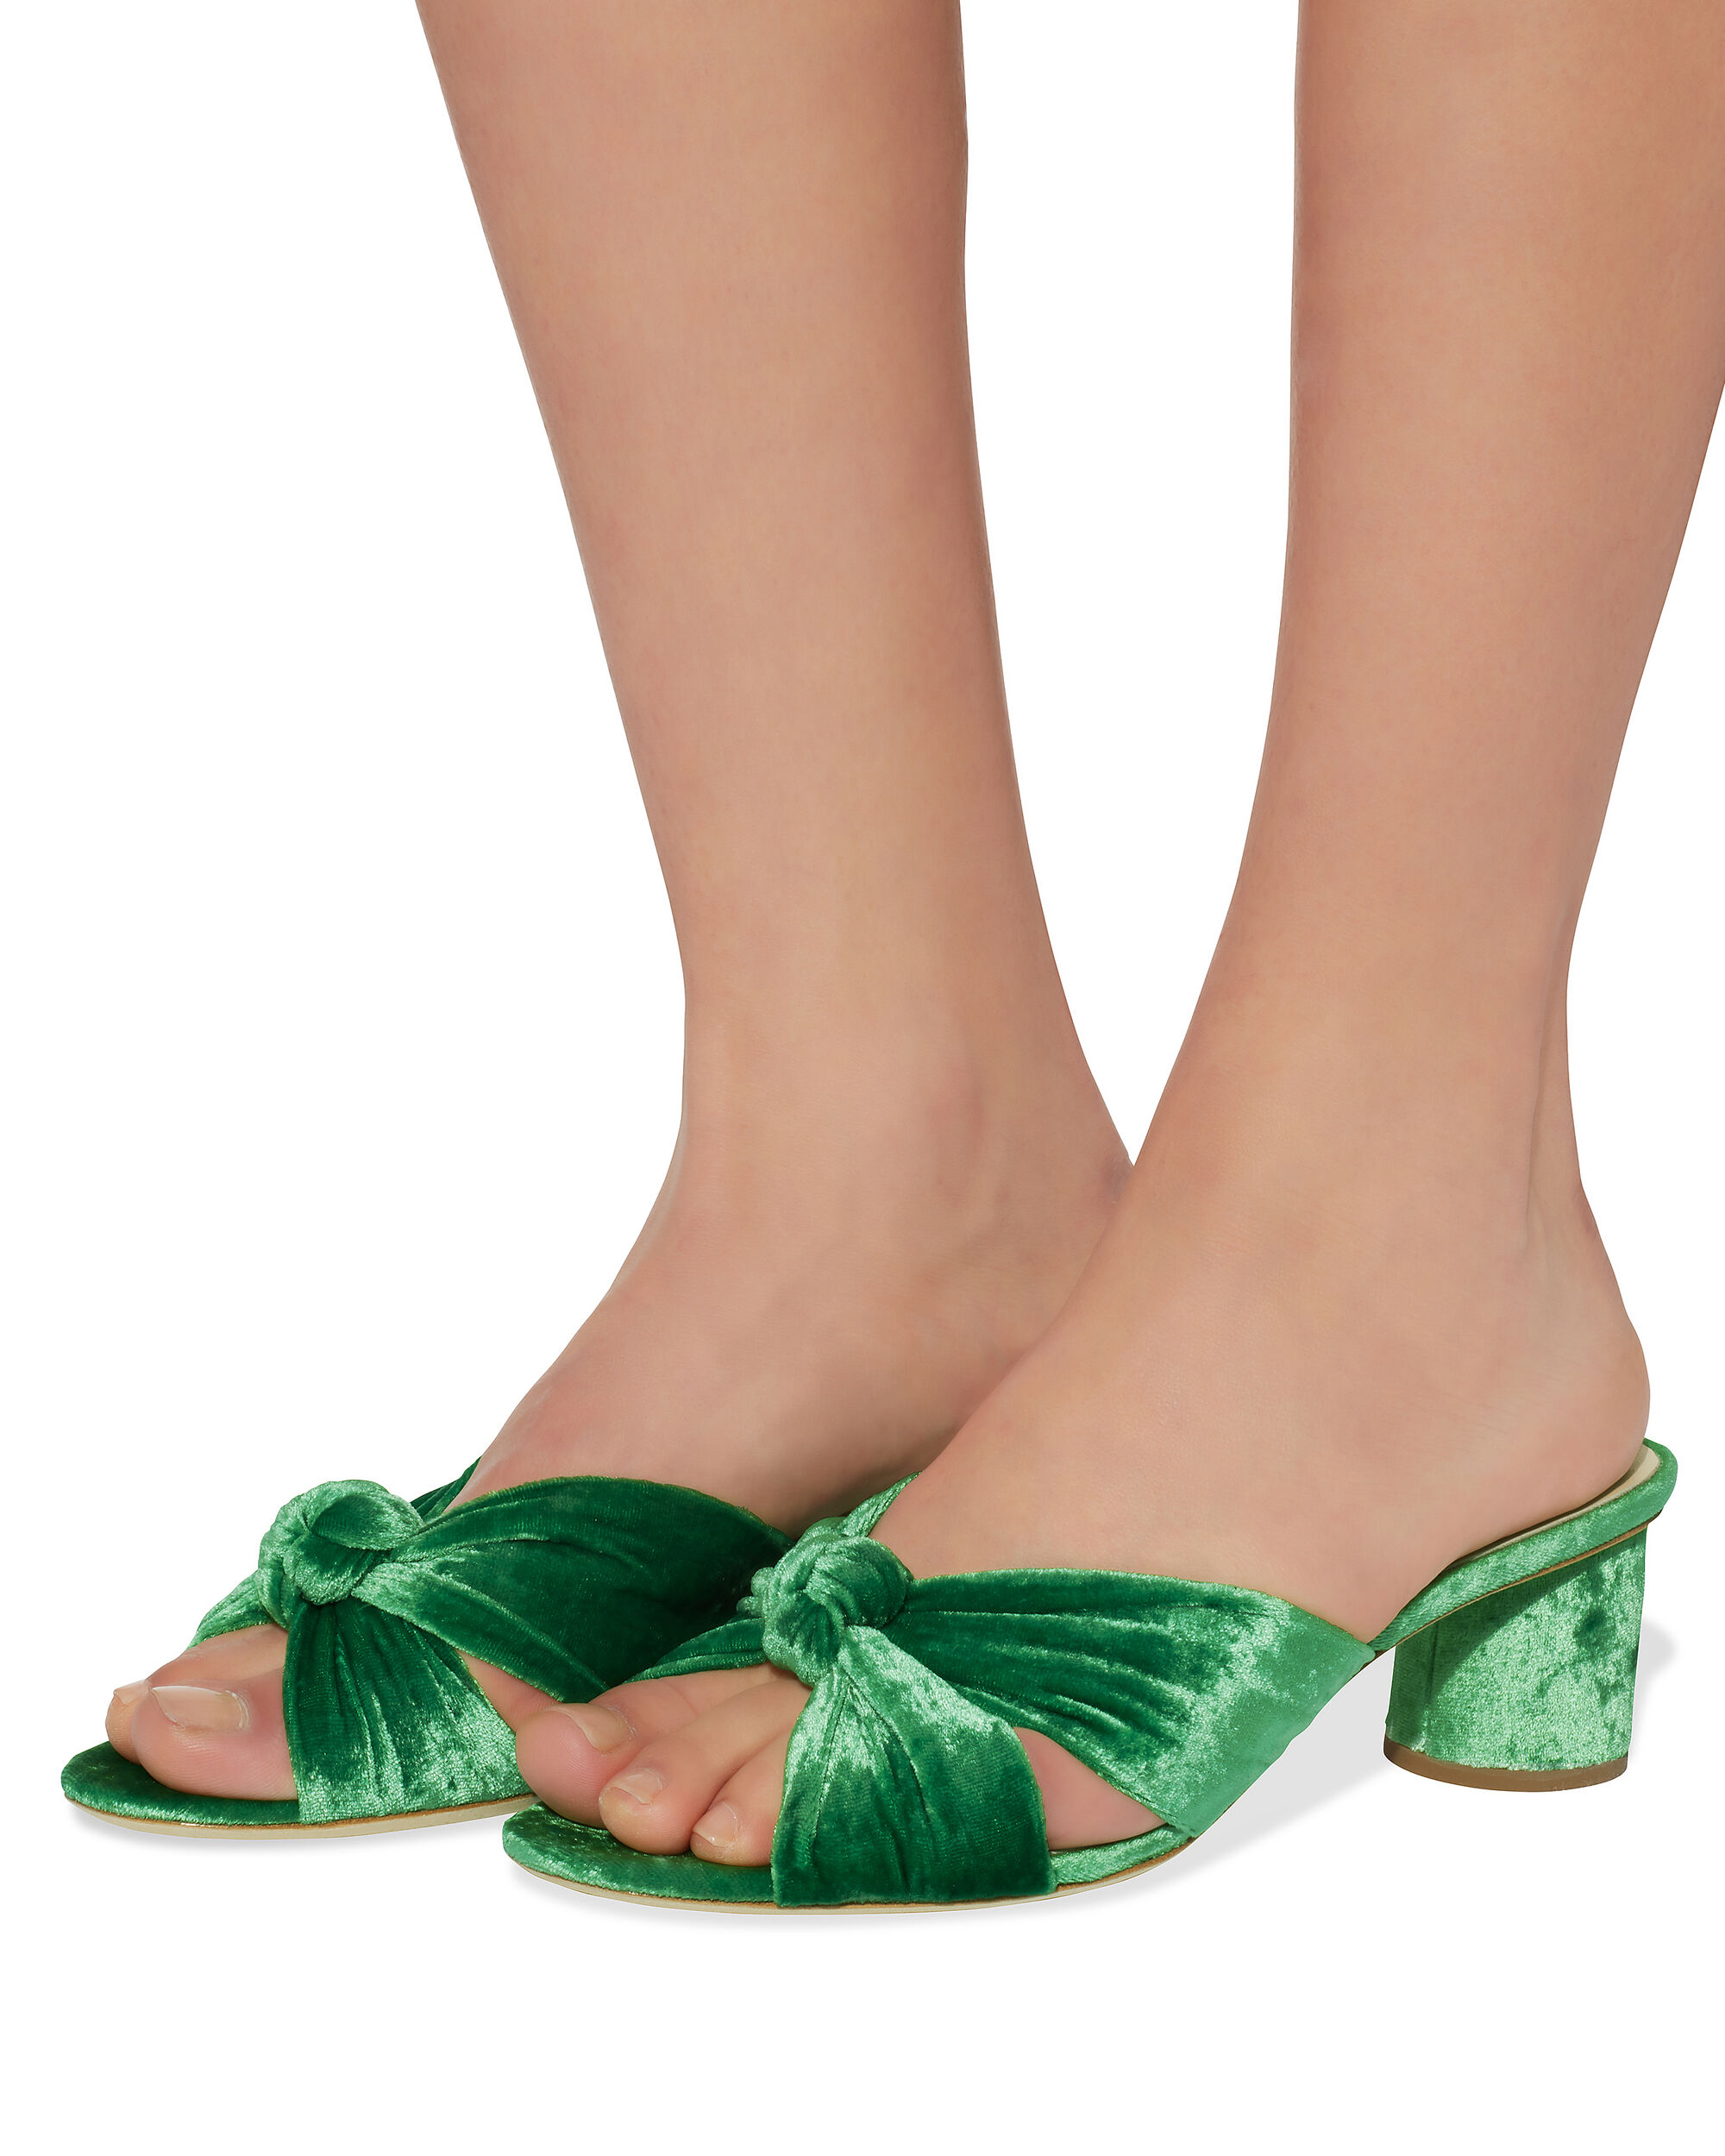 Celeste Emerald Green Slide Sandals, EMERALD, hi-res